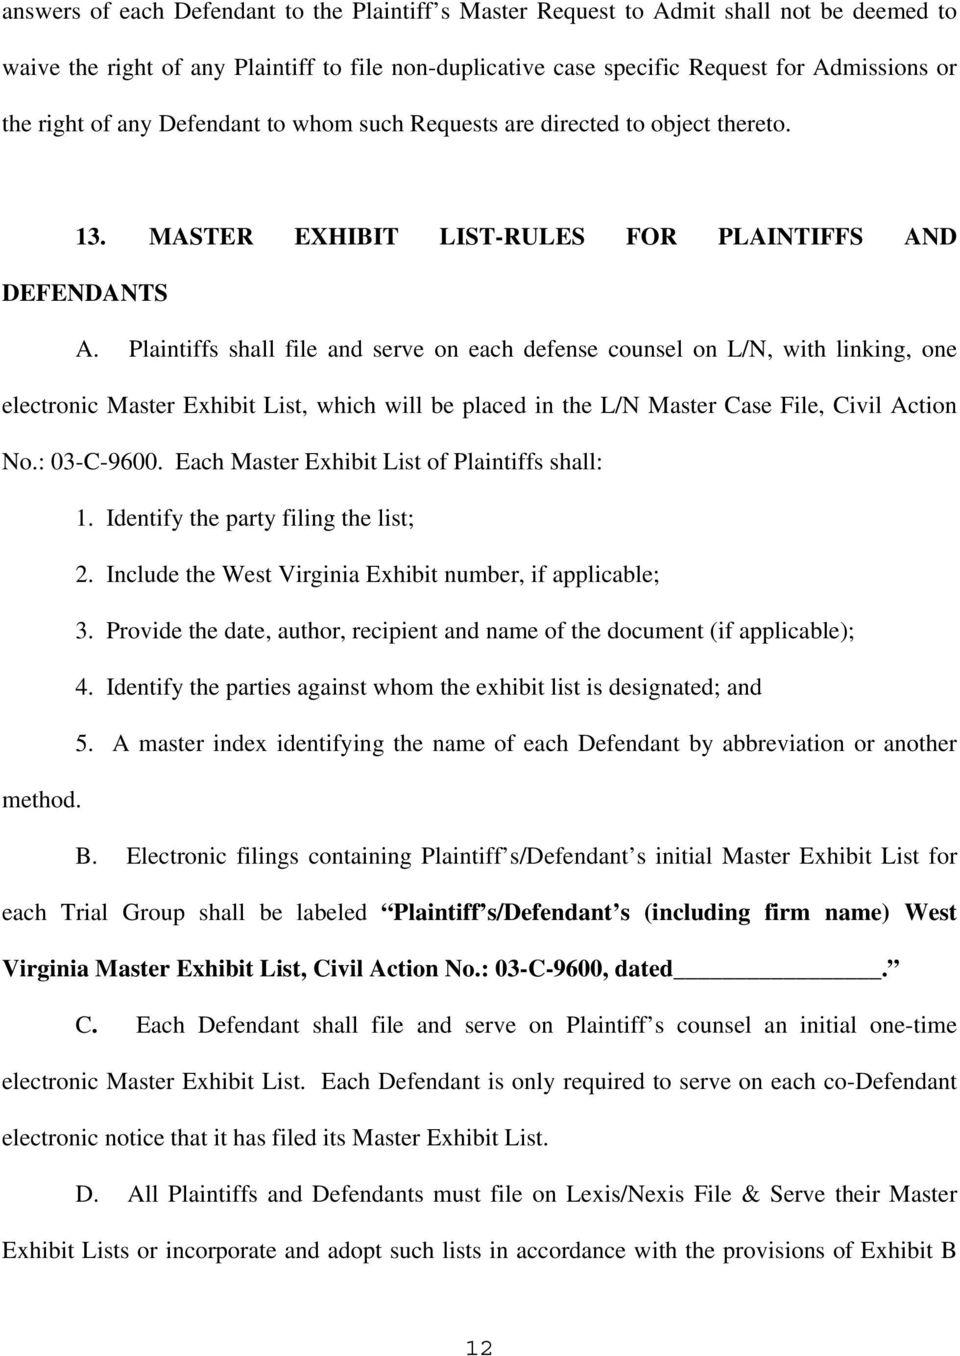 Plaintiffs shall file and serve on each defense counsel on L/N, with linking, one electronic Master Exhibit List, which will be placed in the L/N Master Case File, Civil Action No.: 03-C-9600.